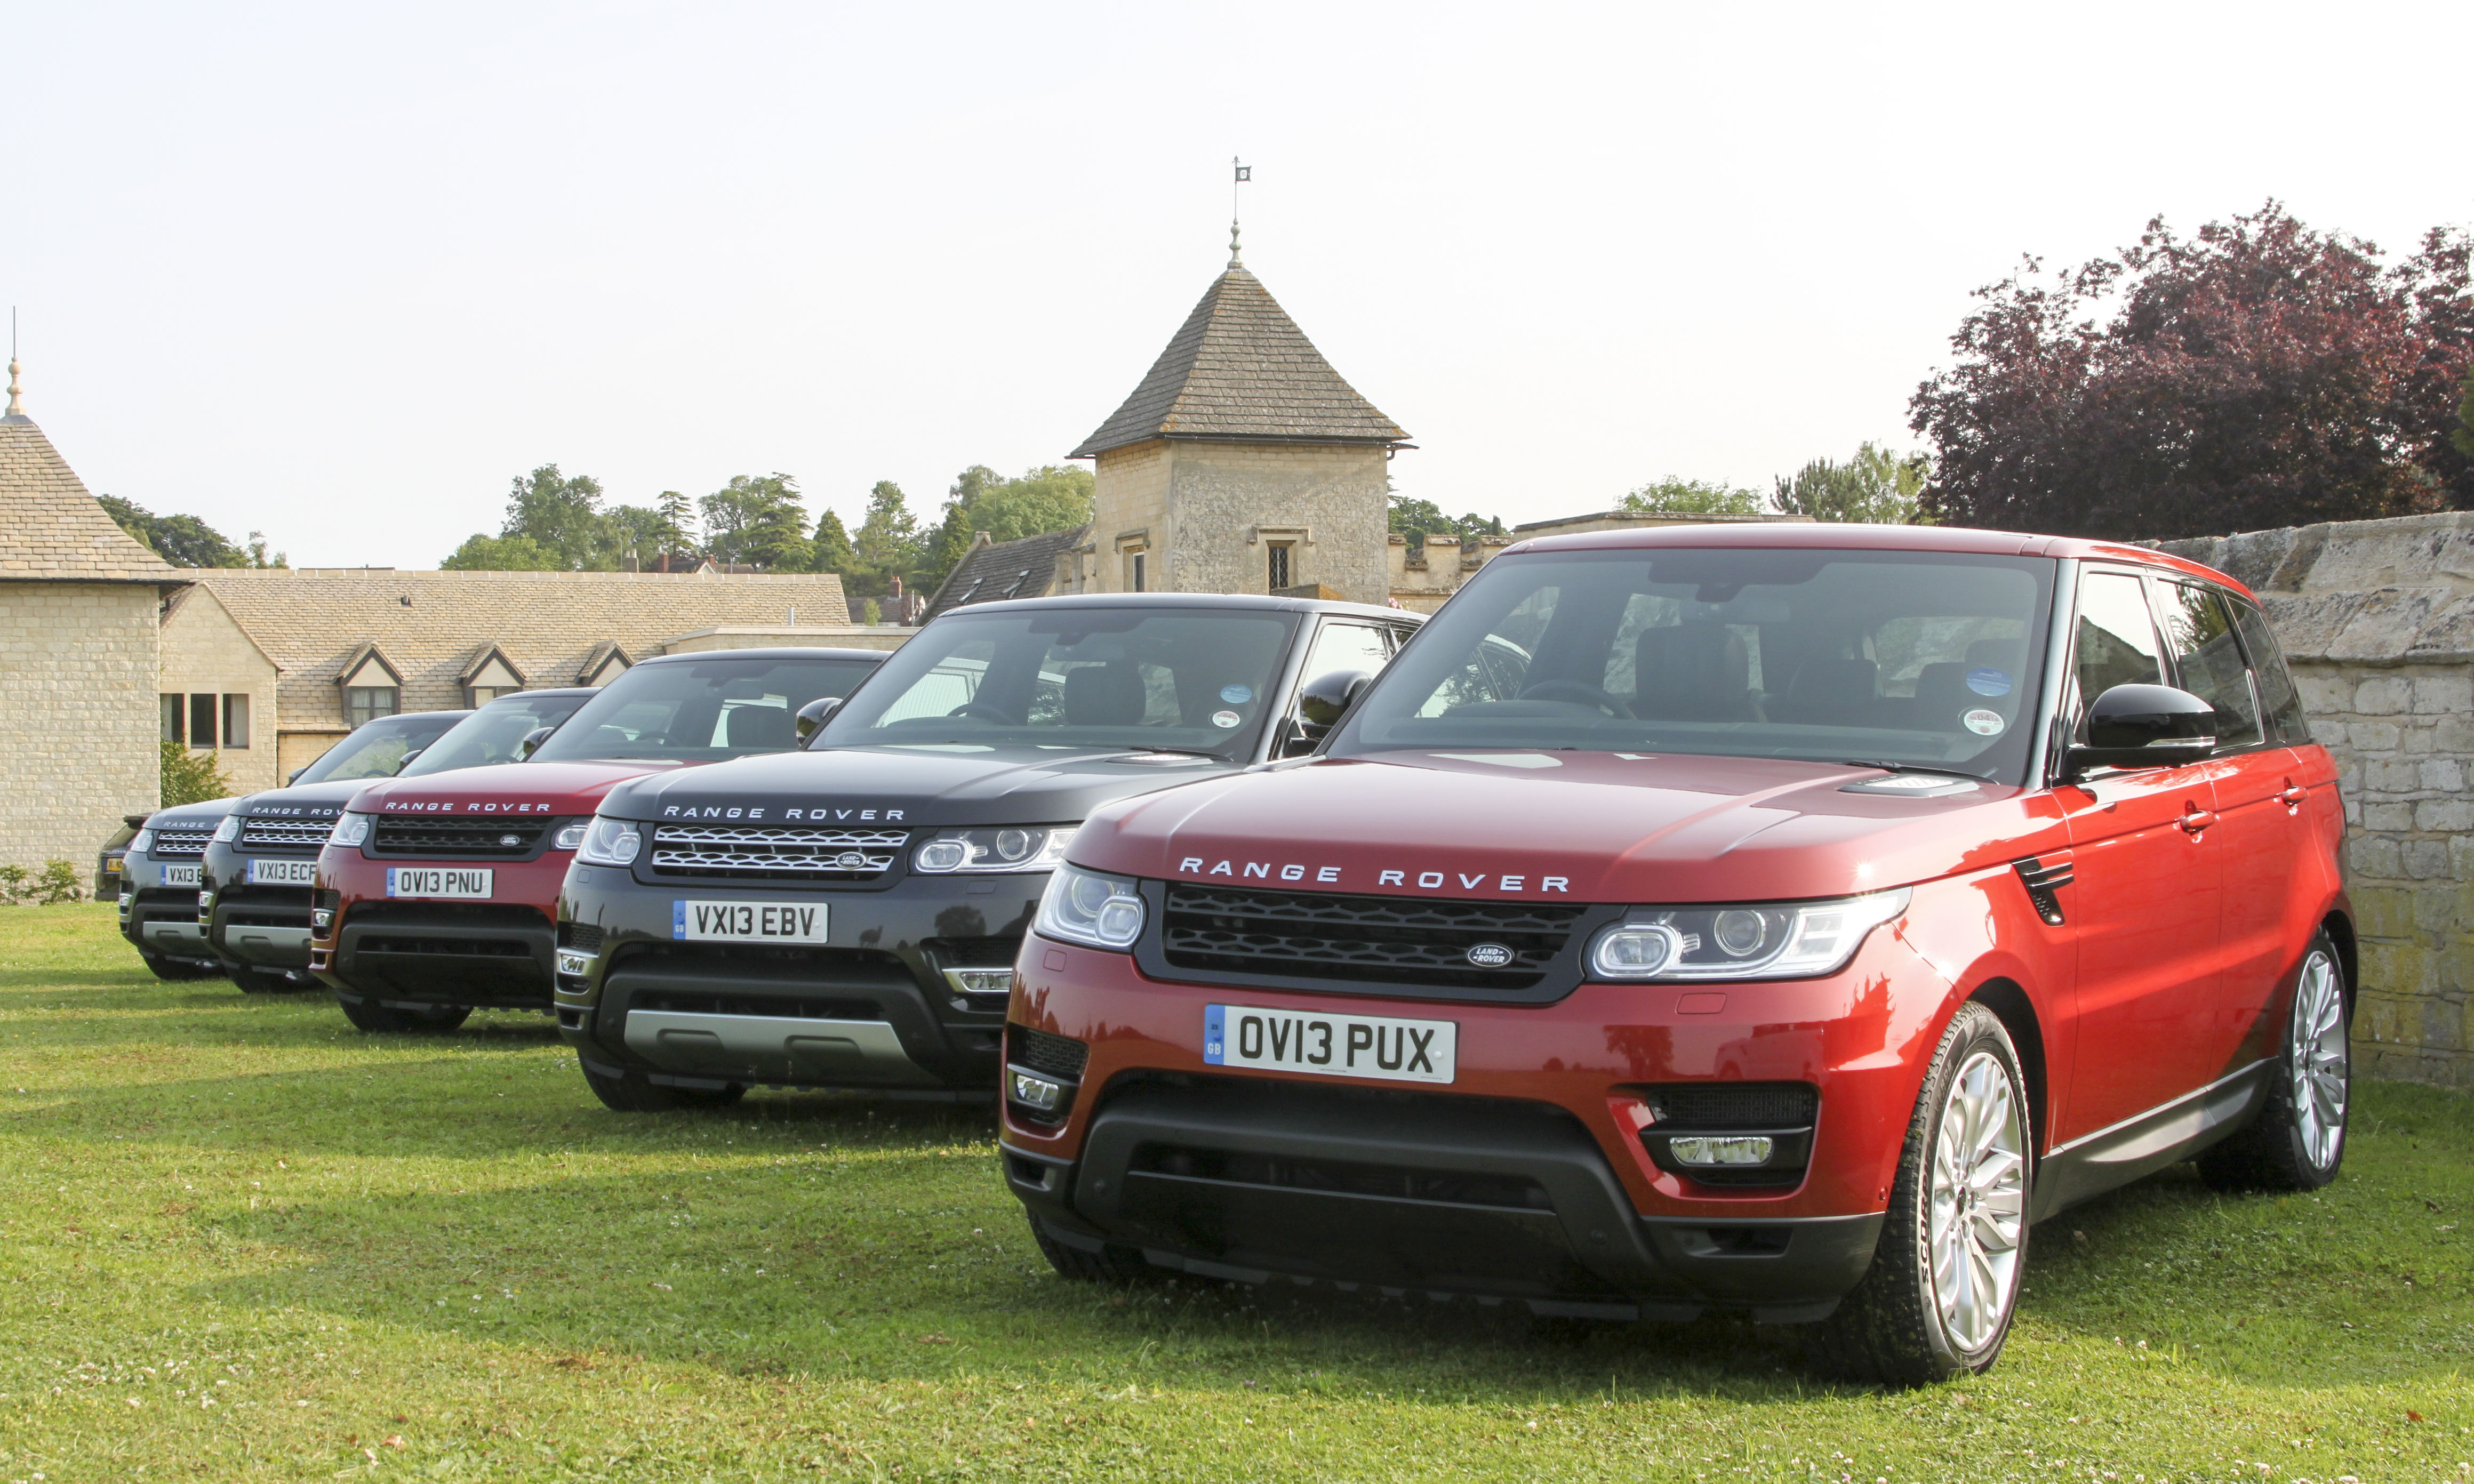 Land Rover Range Rover Sport (c) Perry Stern